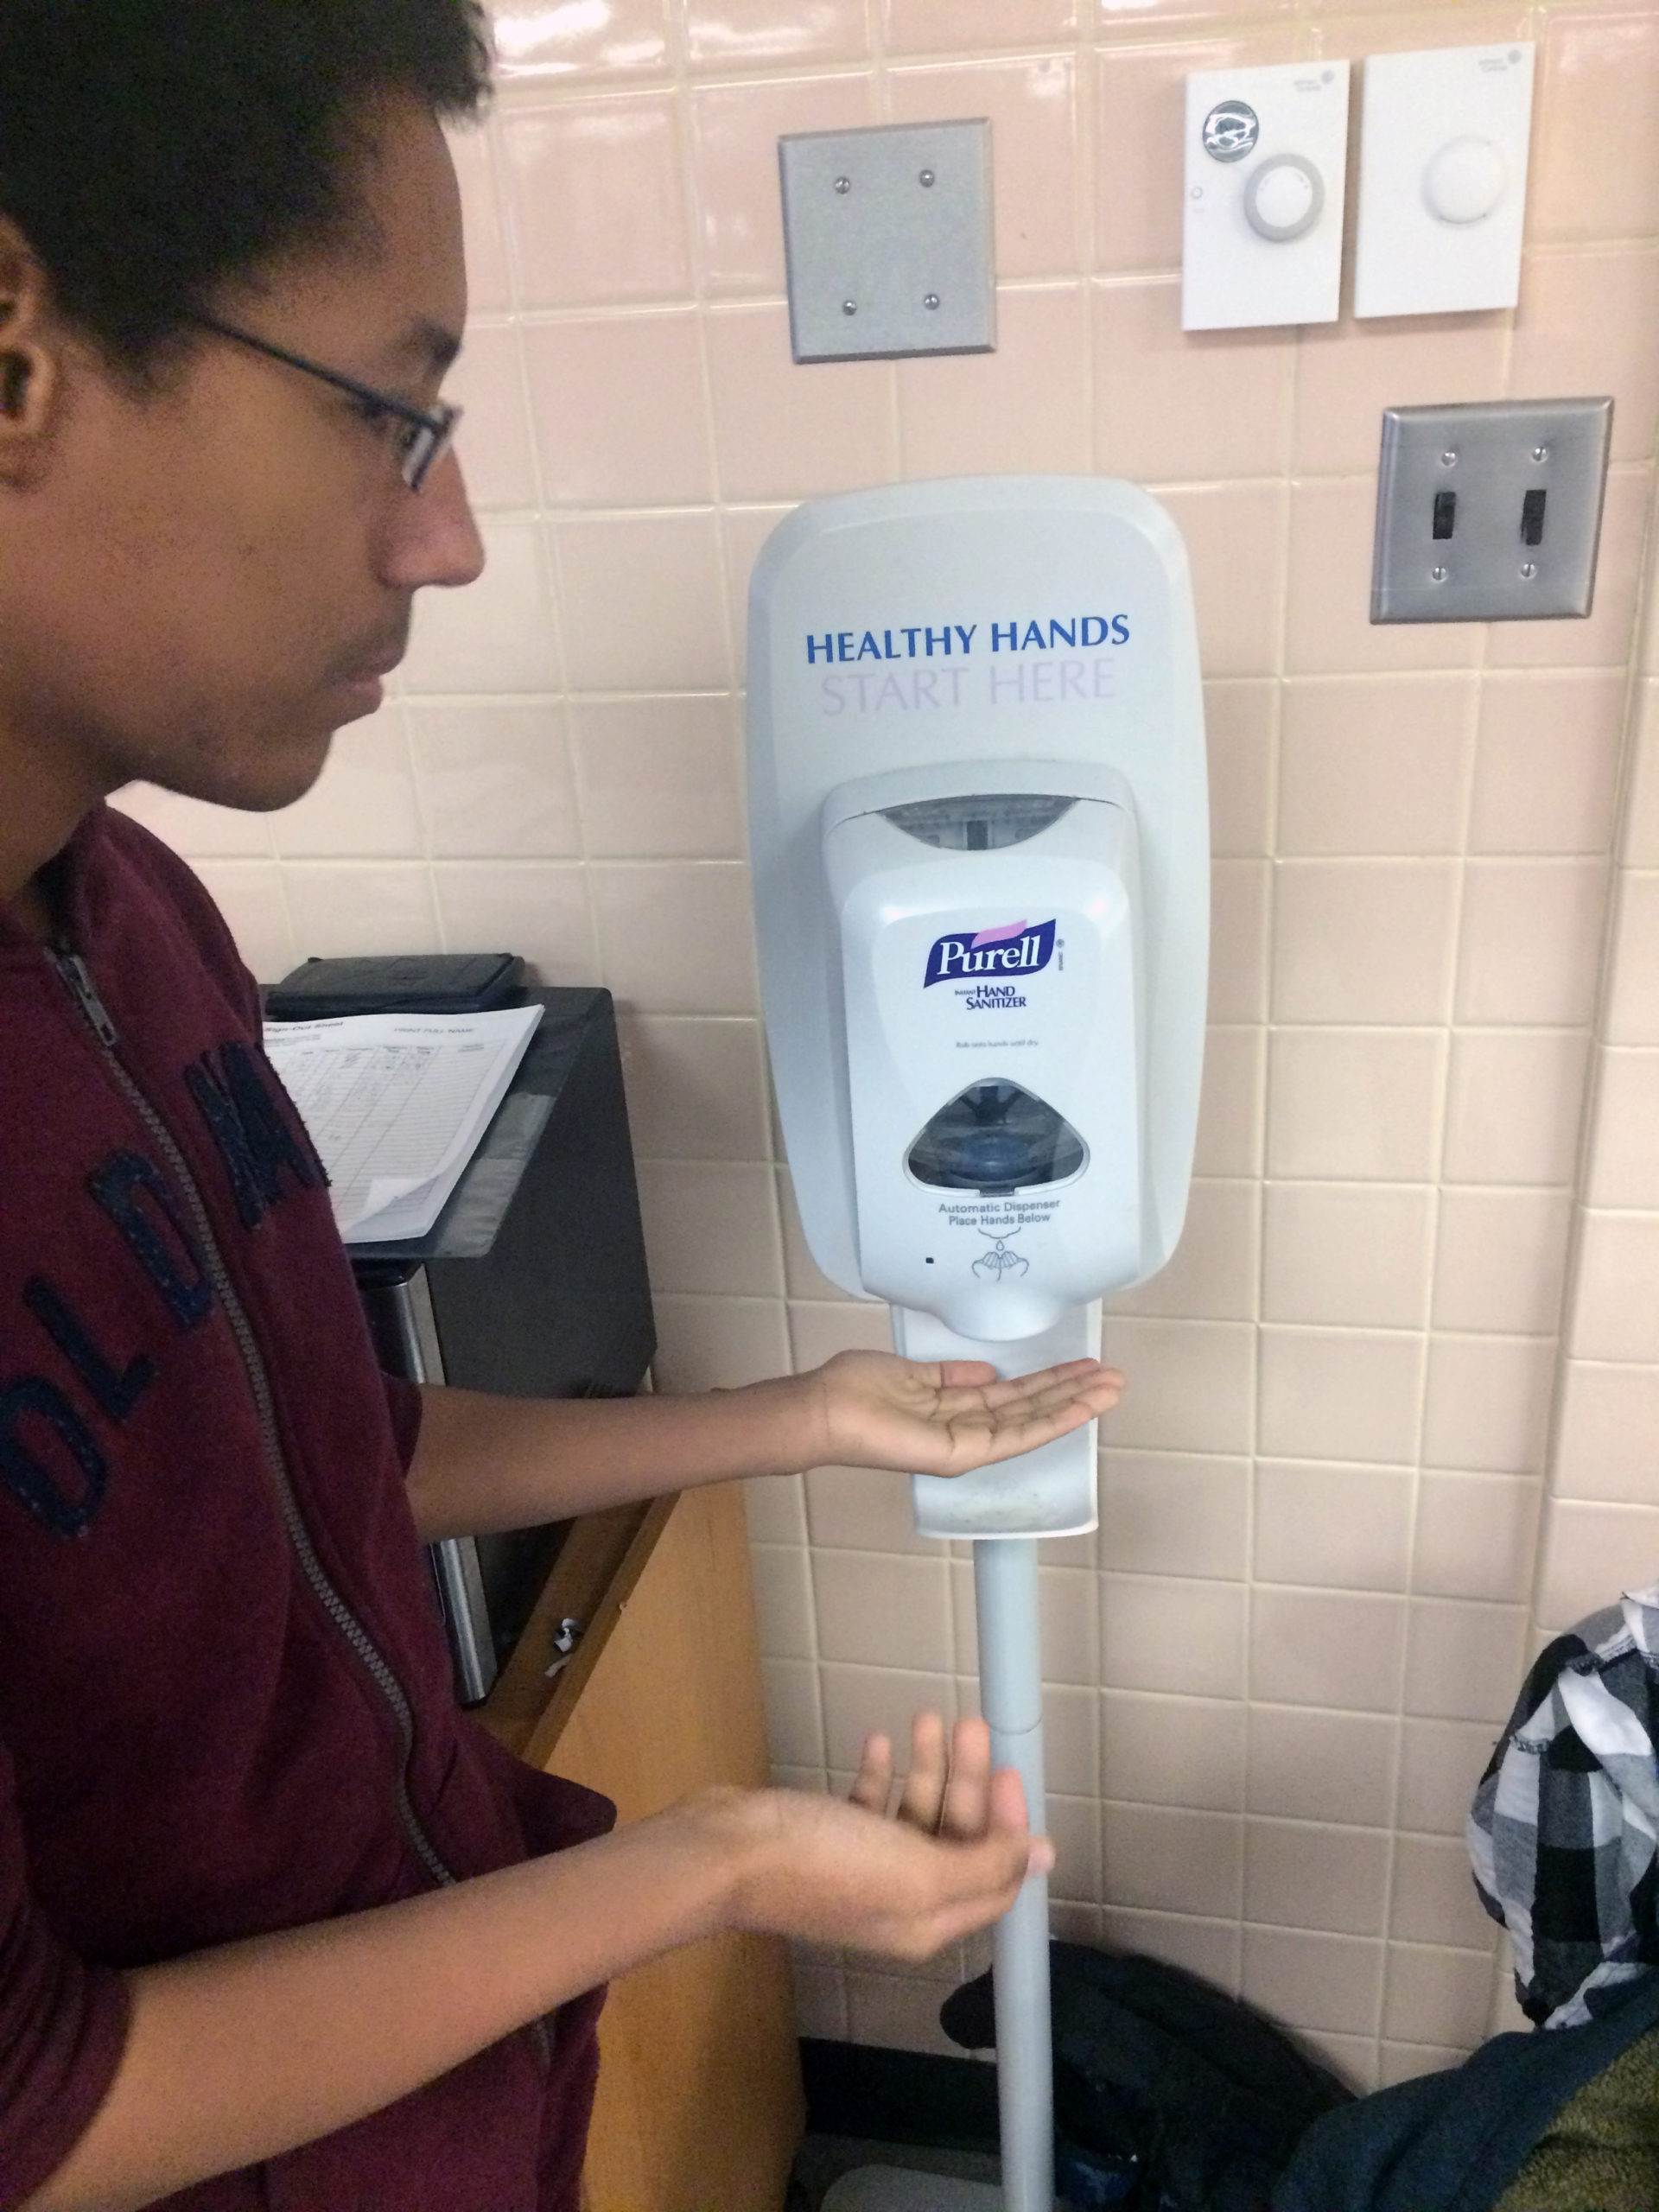 It's that time of year when hand sanitizer is most important